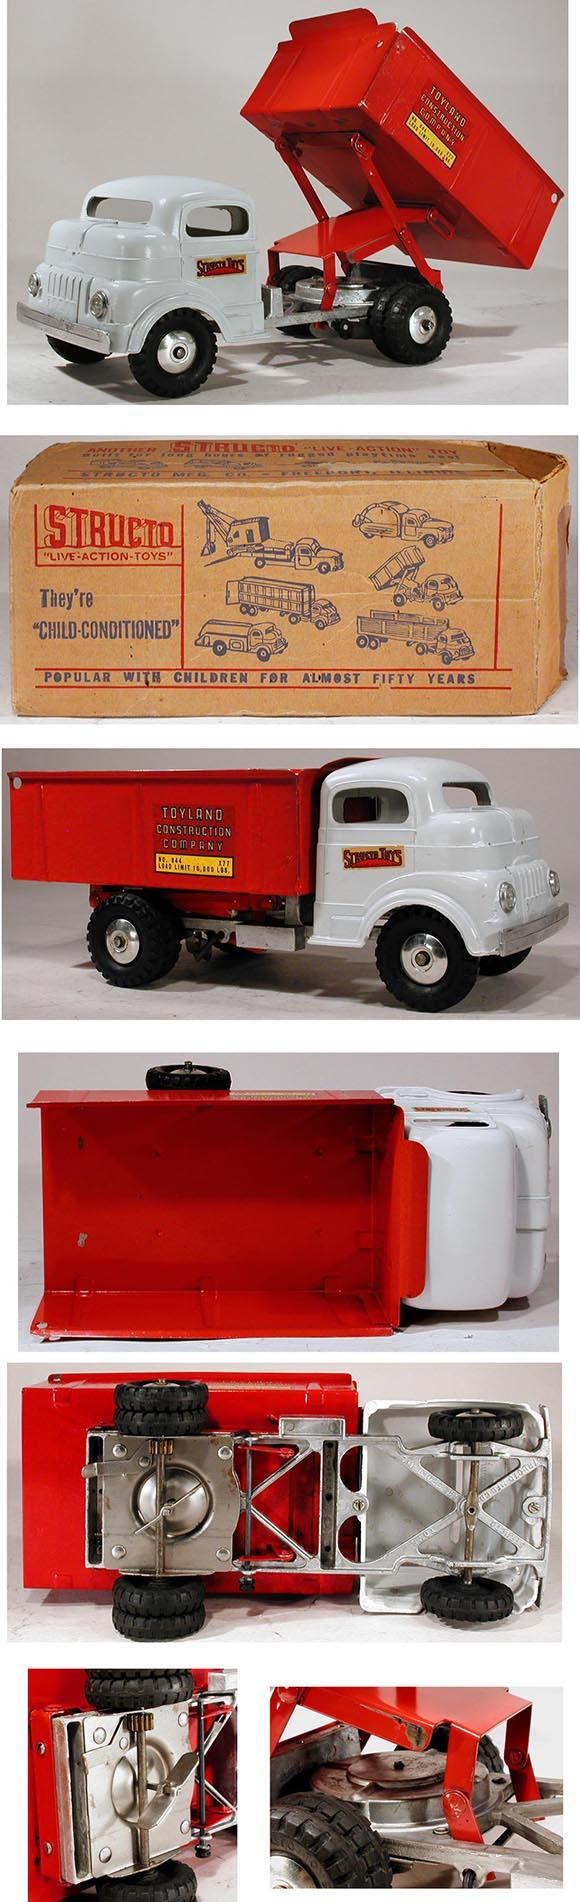 1952 Structo, Hi-Lift Toyland Dump Truck (Wind-Up) in Original Box